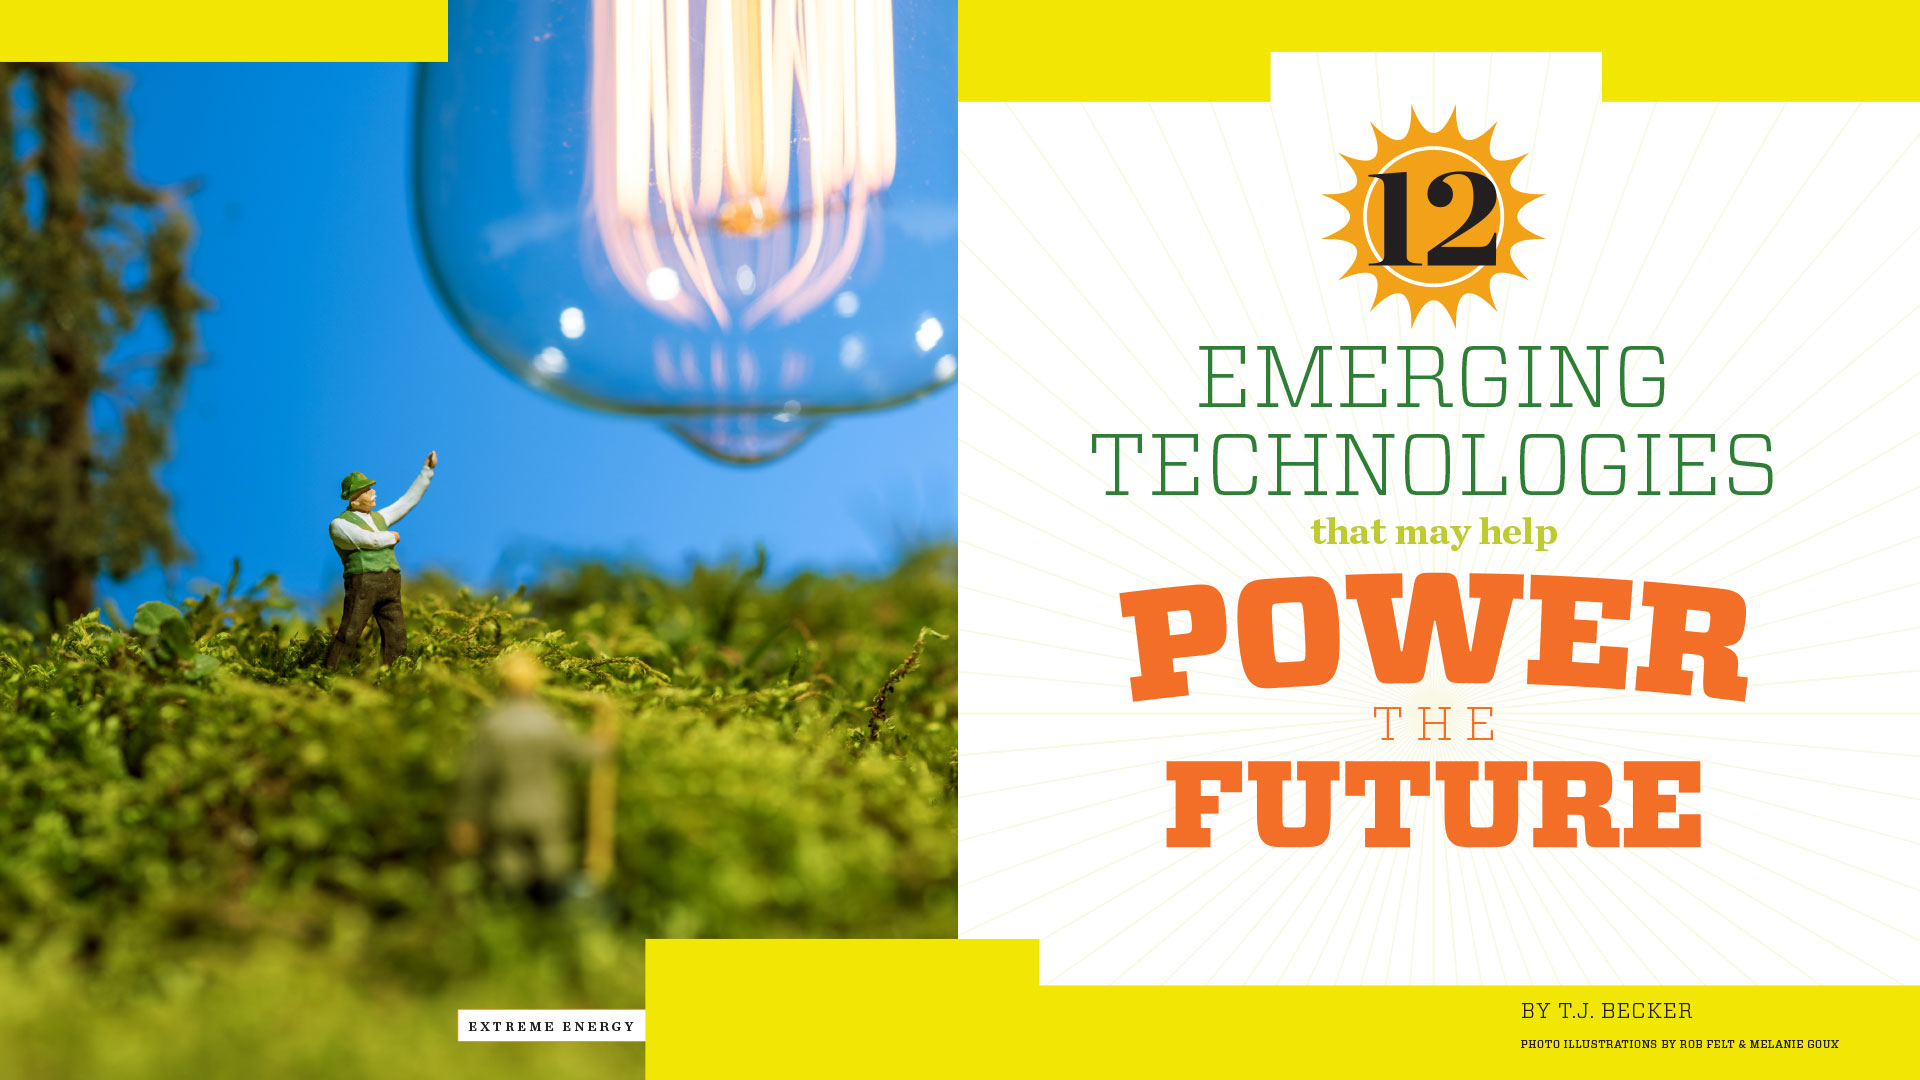 Headline: Emerging Technologies that May Help Power the Future. By T.J. Becker, Photo illustrations by Rob Felt & Melanie Goux